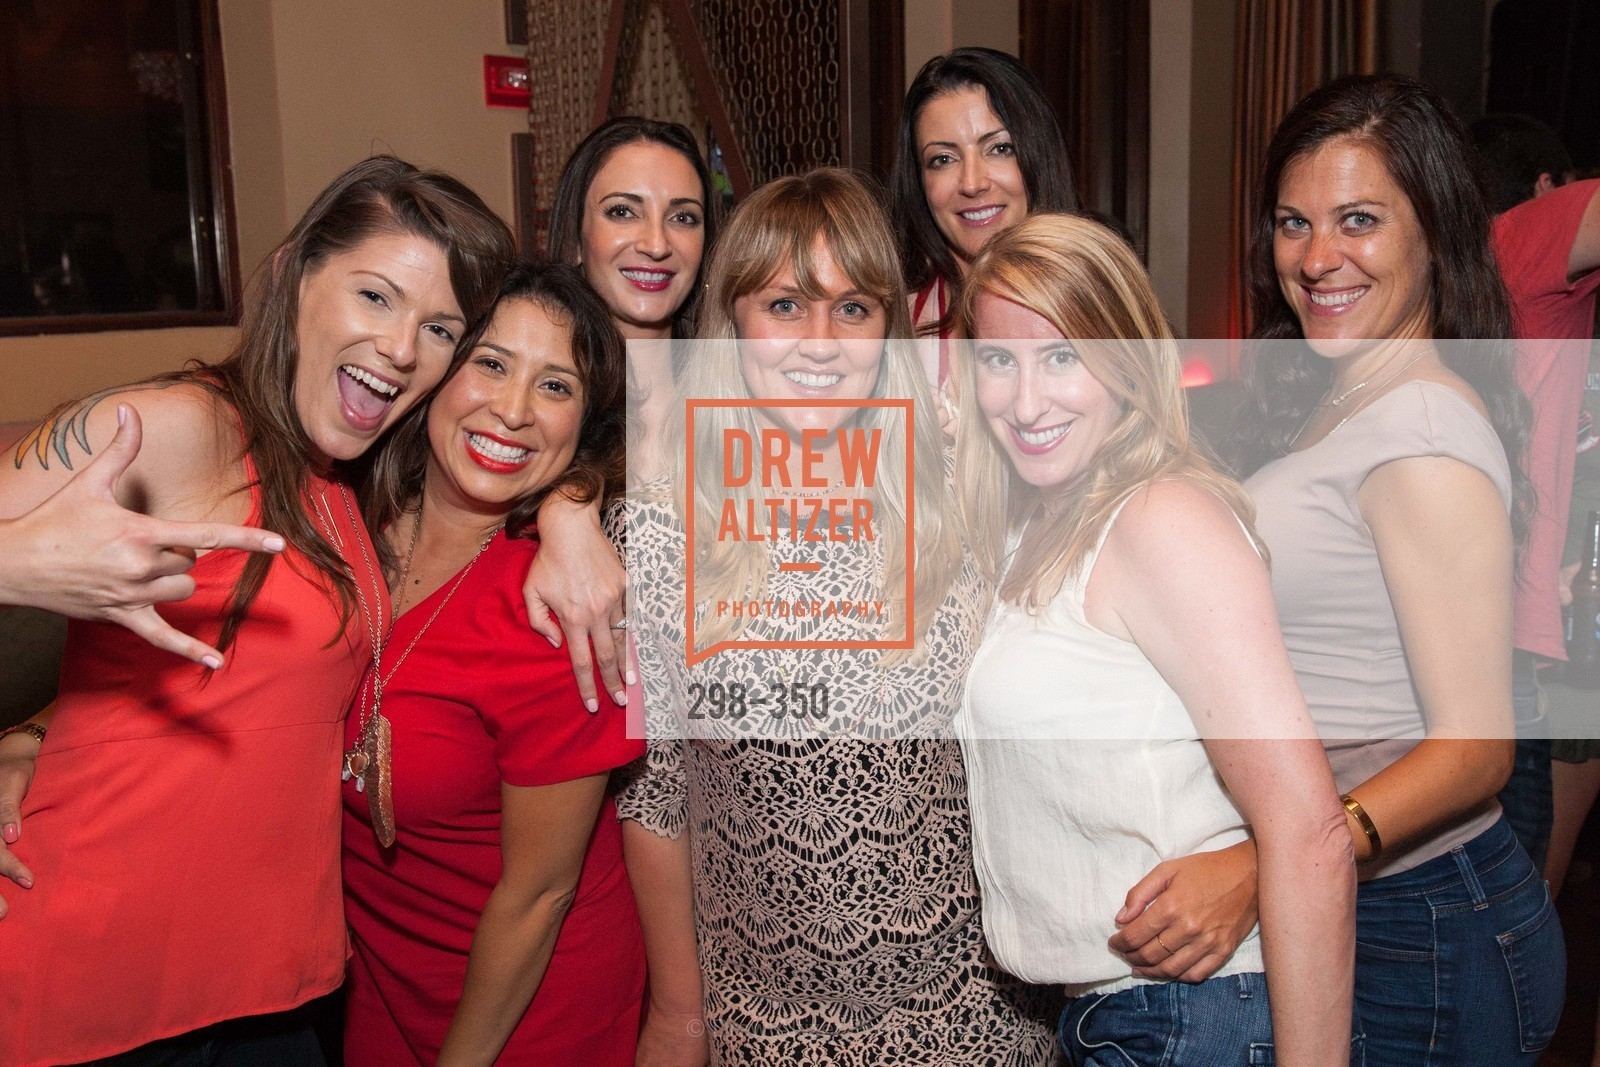 Top Picks, Spinsters of San Francisco Presents: Fleet or Flight, October 9th, 2015, Photo,Drew Altizer, Drew Altizer Photography, full-service agency, private events, San Francisco photographer, photographer california